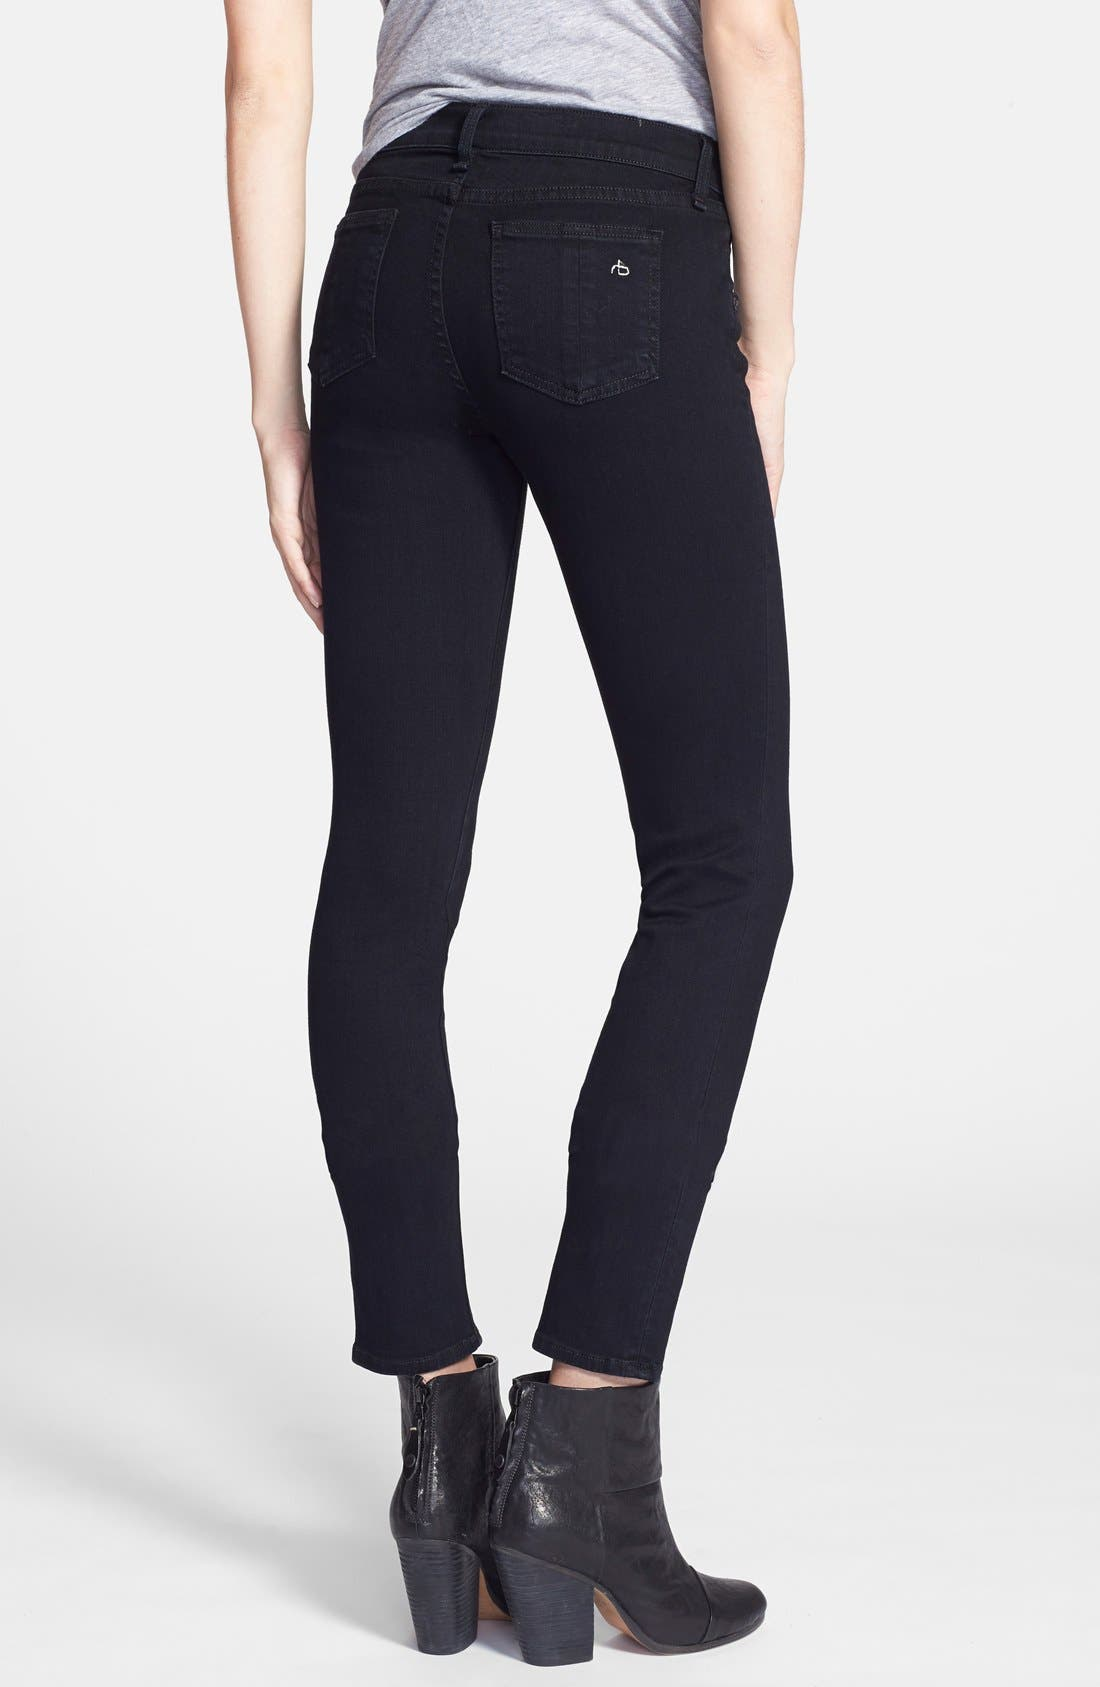 JEAN 'The Skinny' Stretch Jeans,                             Alternate thumbnail 11, color,                             002